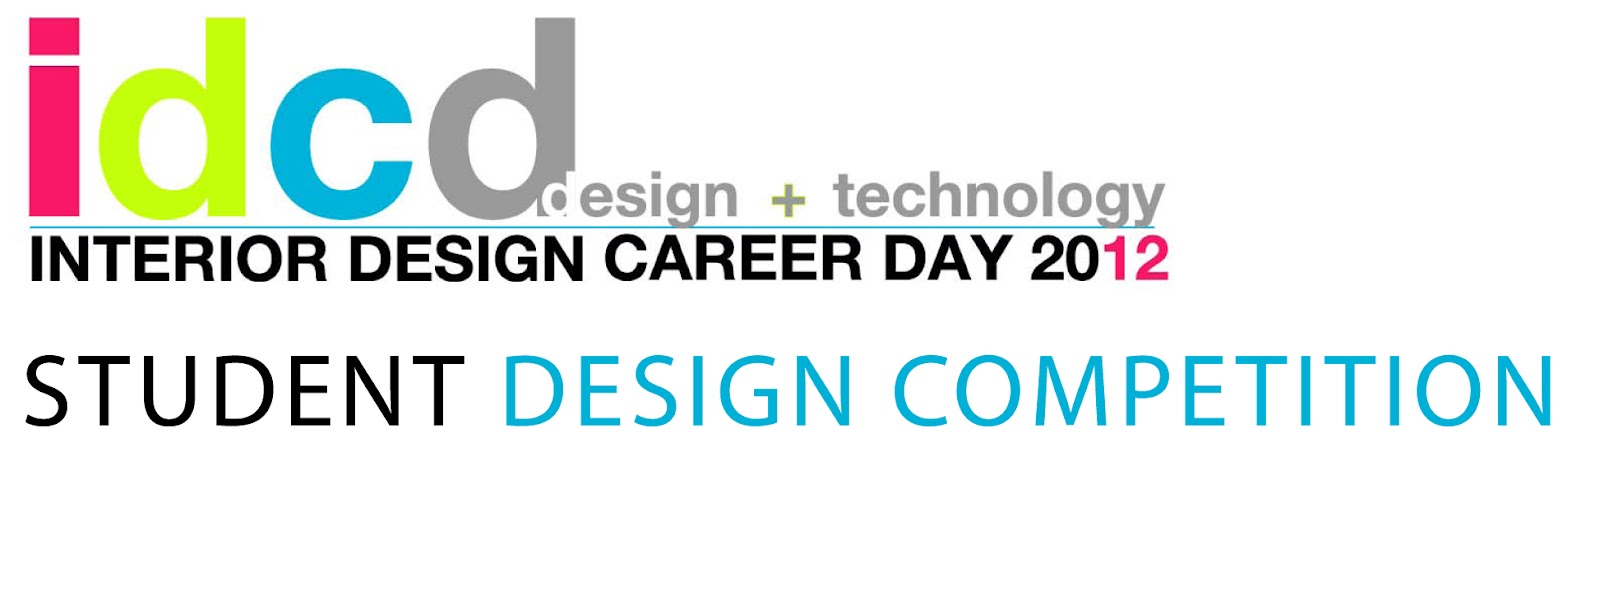 Interior Design Career Day Student Competition